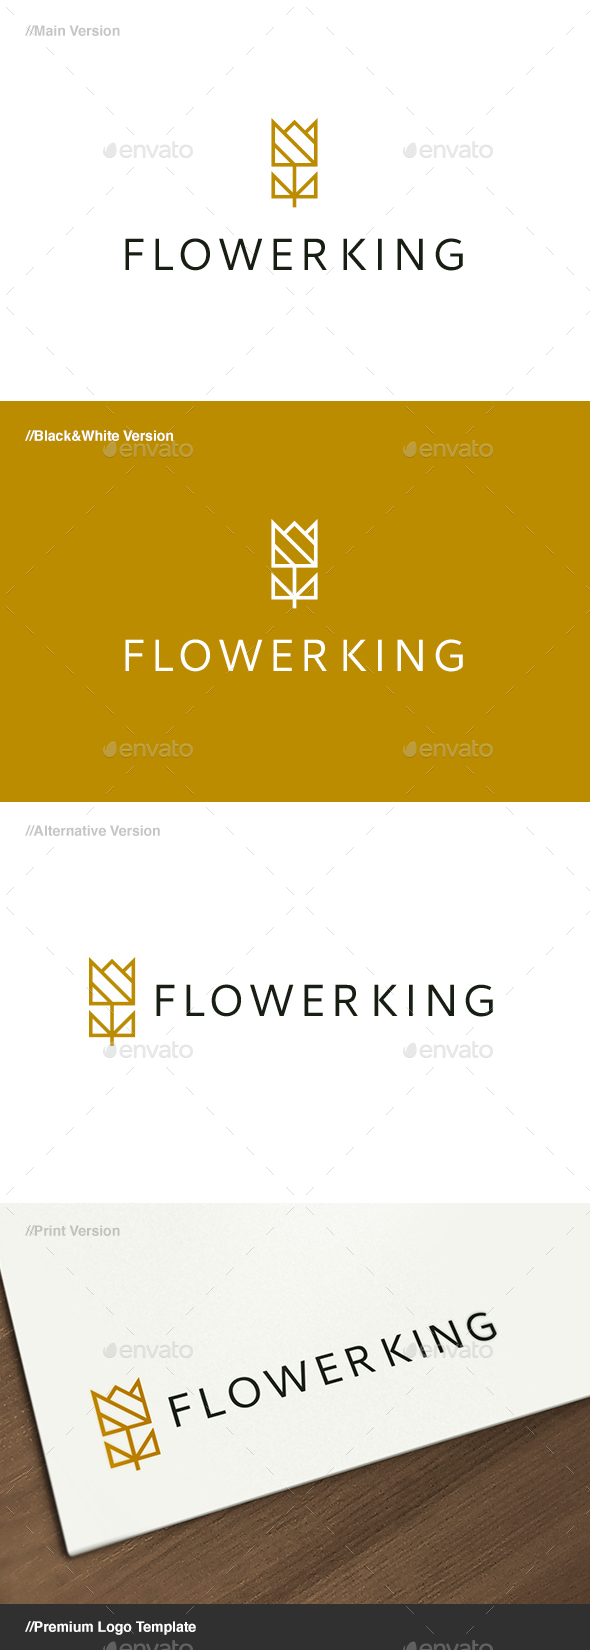 Flower King Logo - Nature Logo Templates